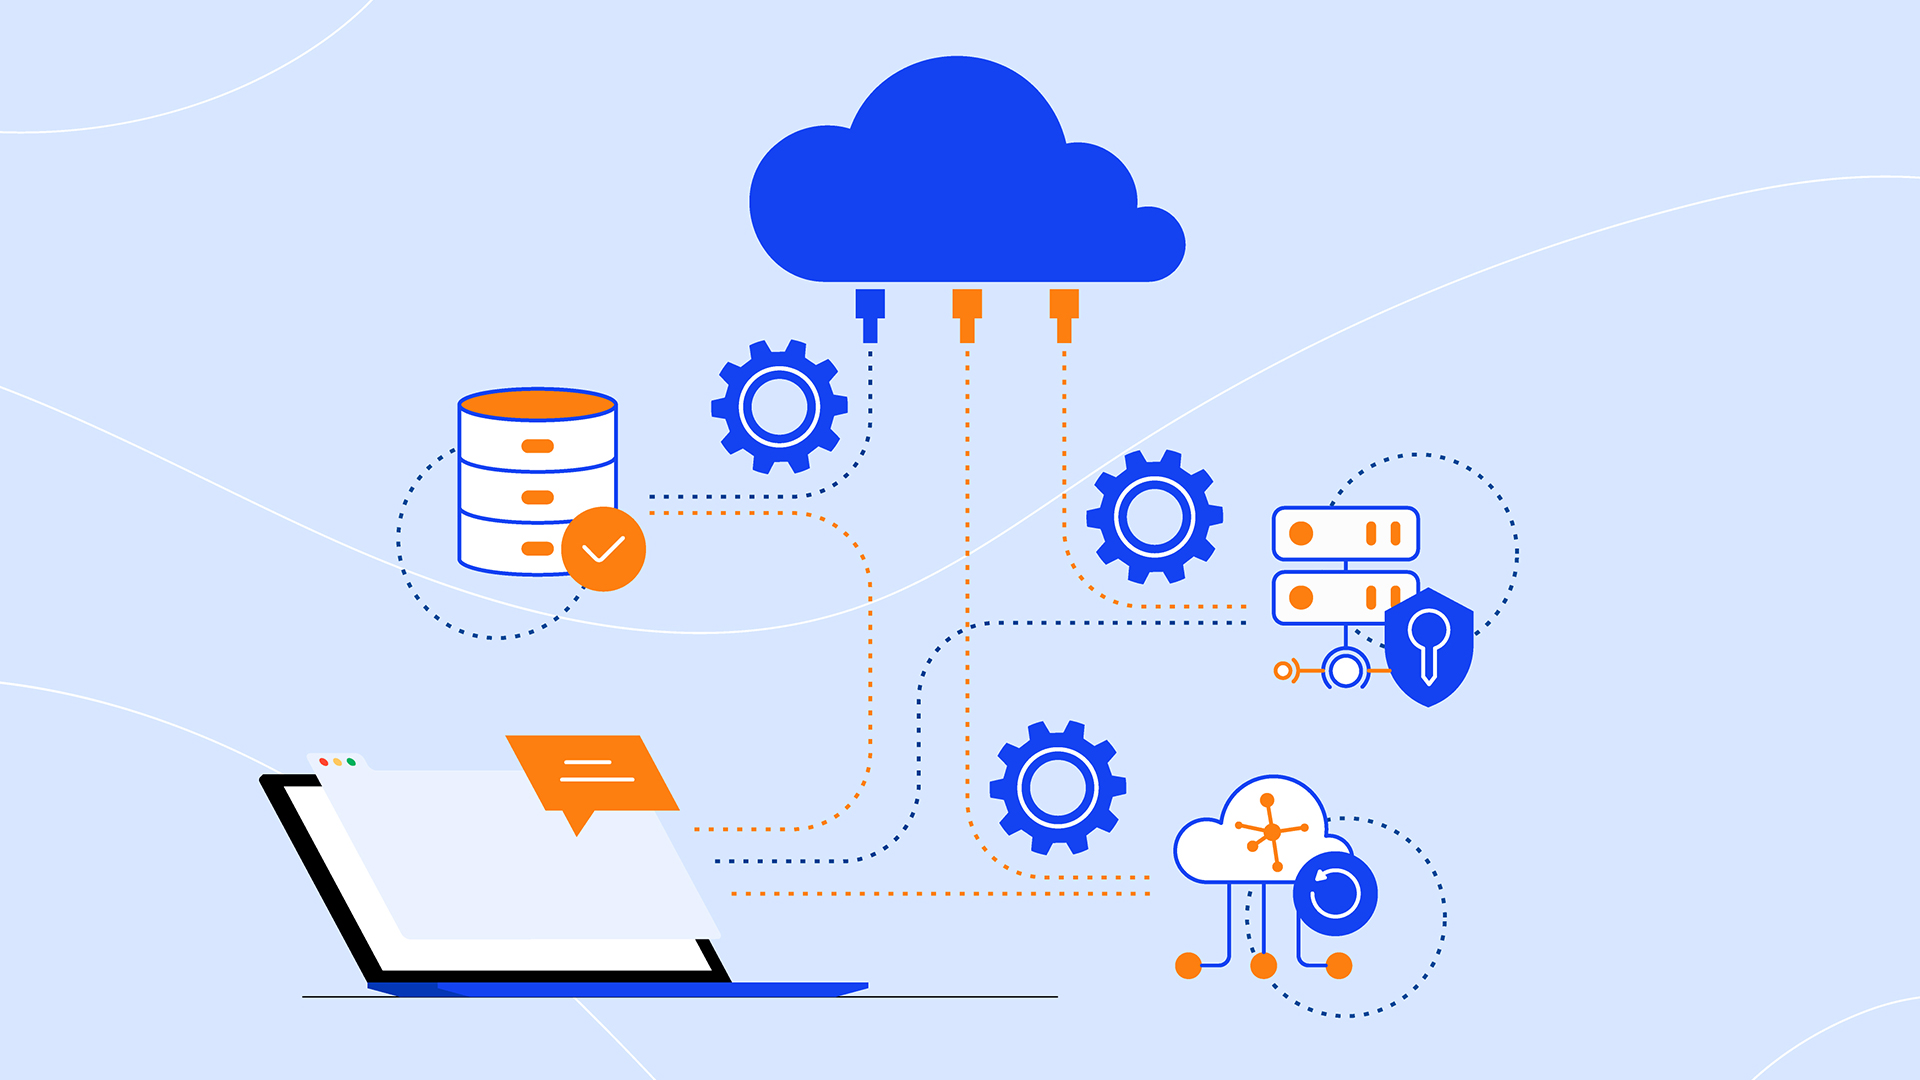 Breaking Down the Cloud-native and Microservice Architecture